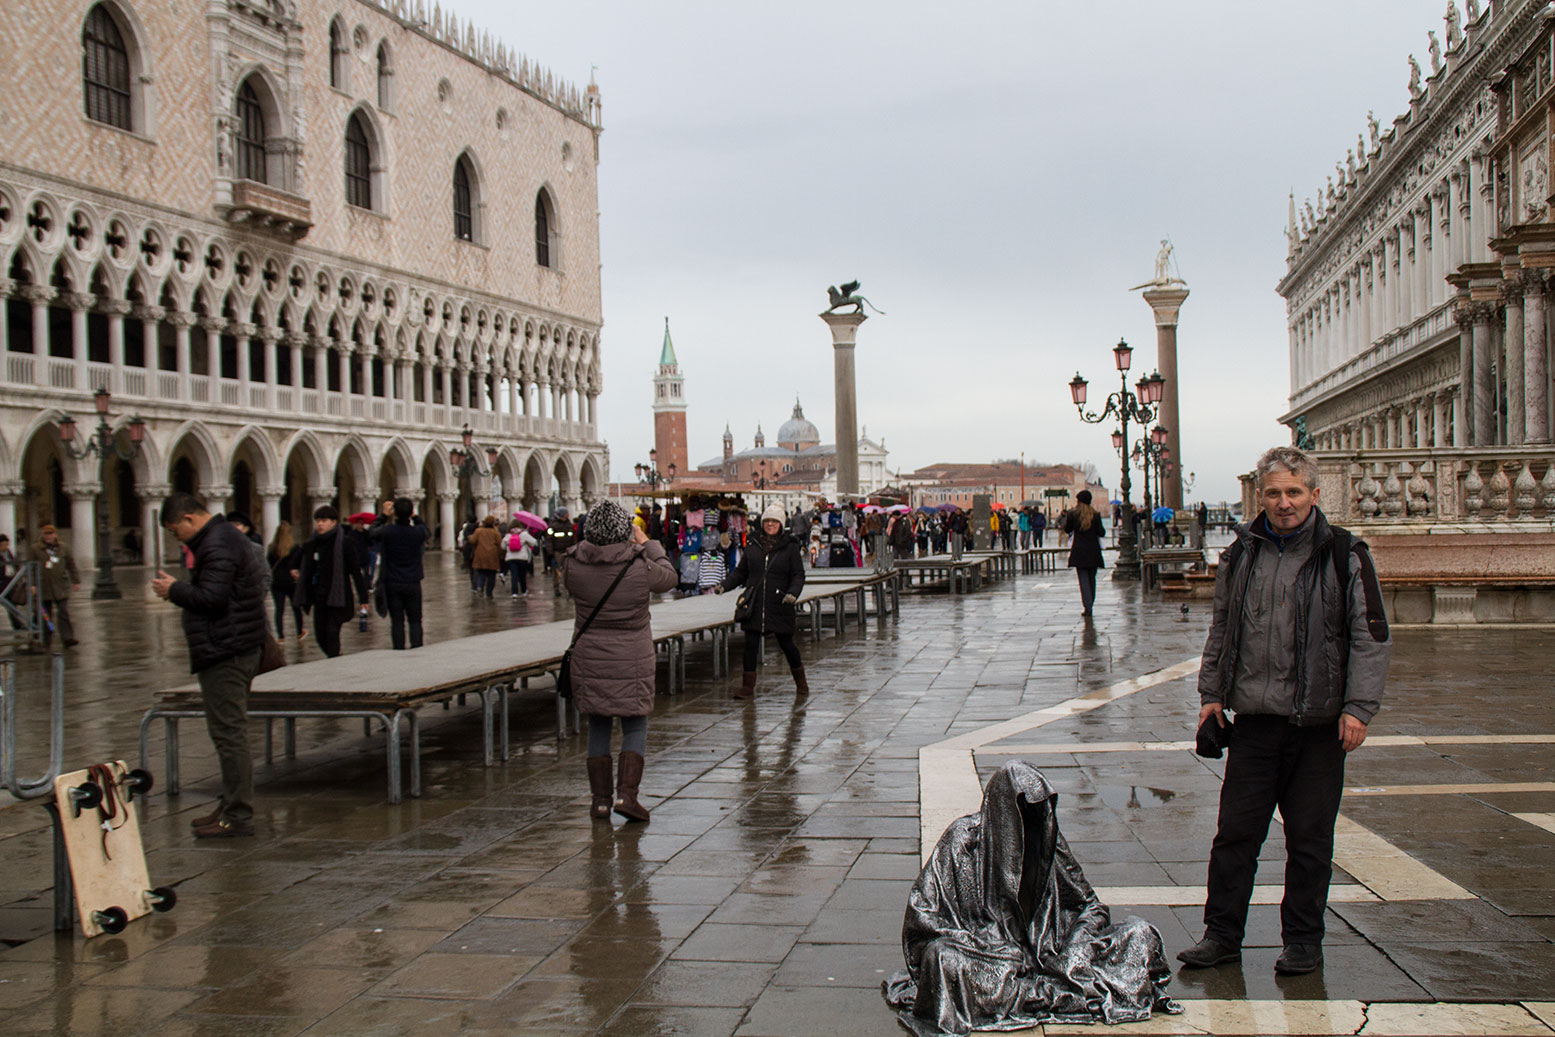 art-biennale-venice-guardians-of-time-manfred-kili-kielnhofer-contemporary-fine-art-design-sculpture-antique-show-8067